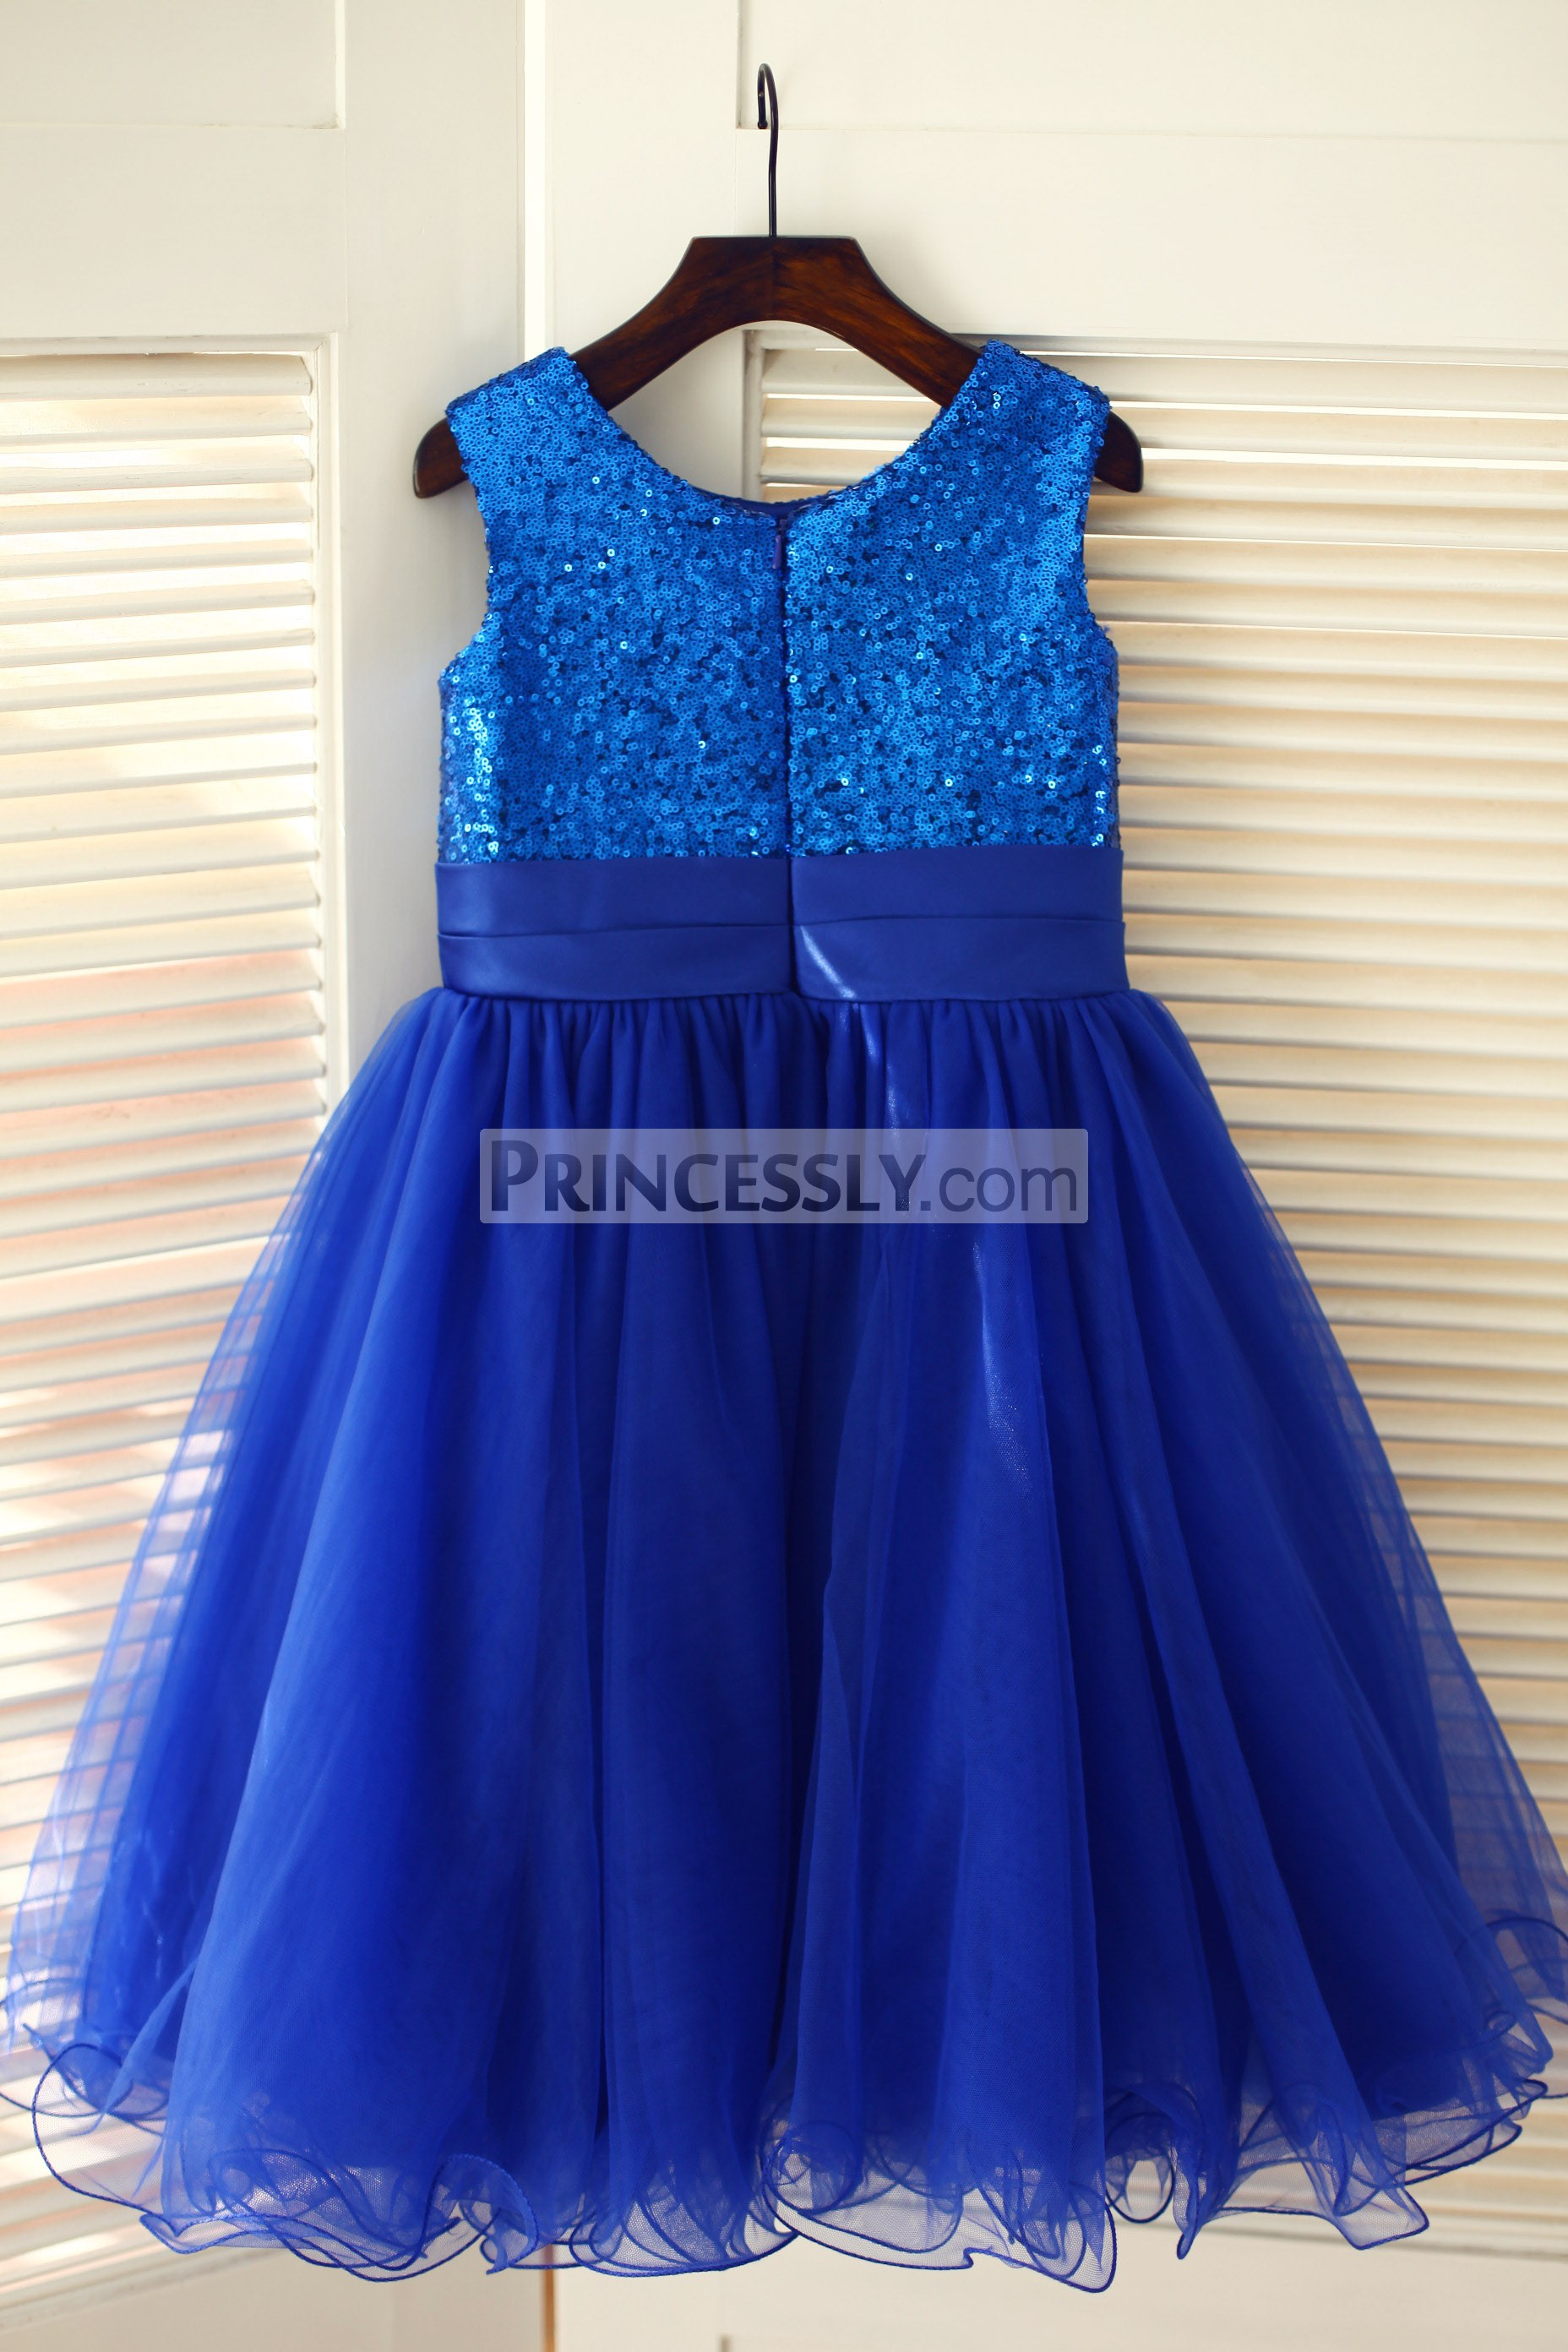 Blue sequin tulle wedding baby girl dress